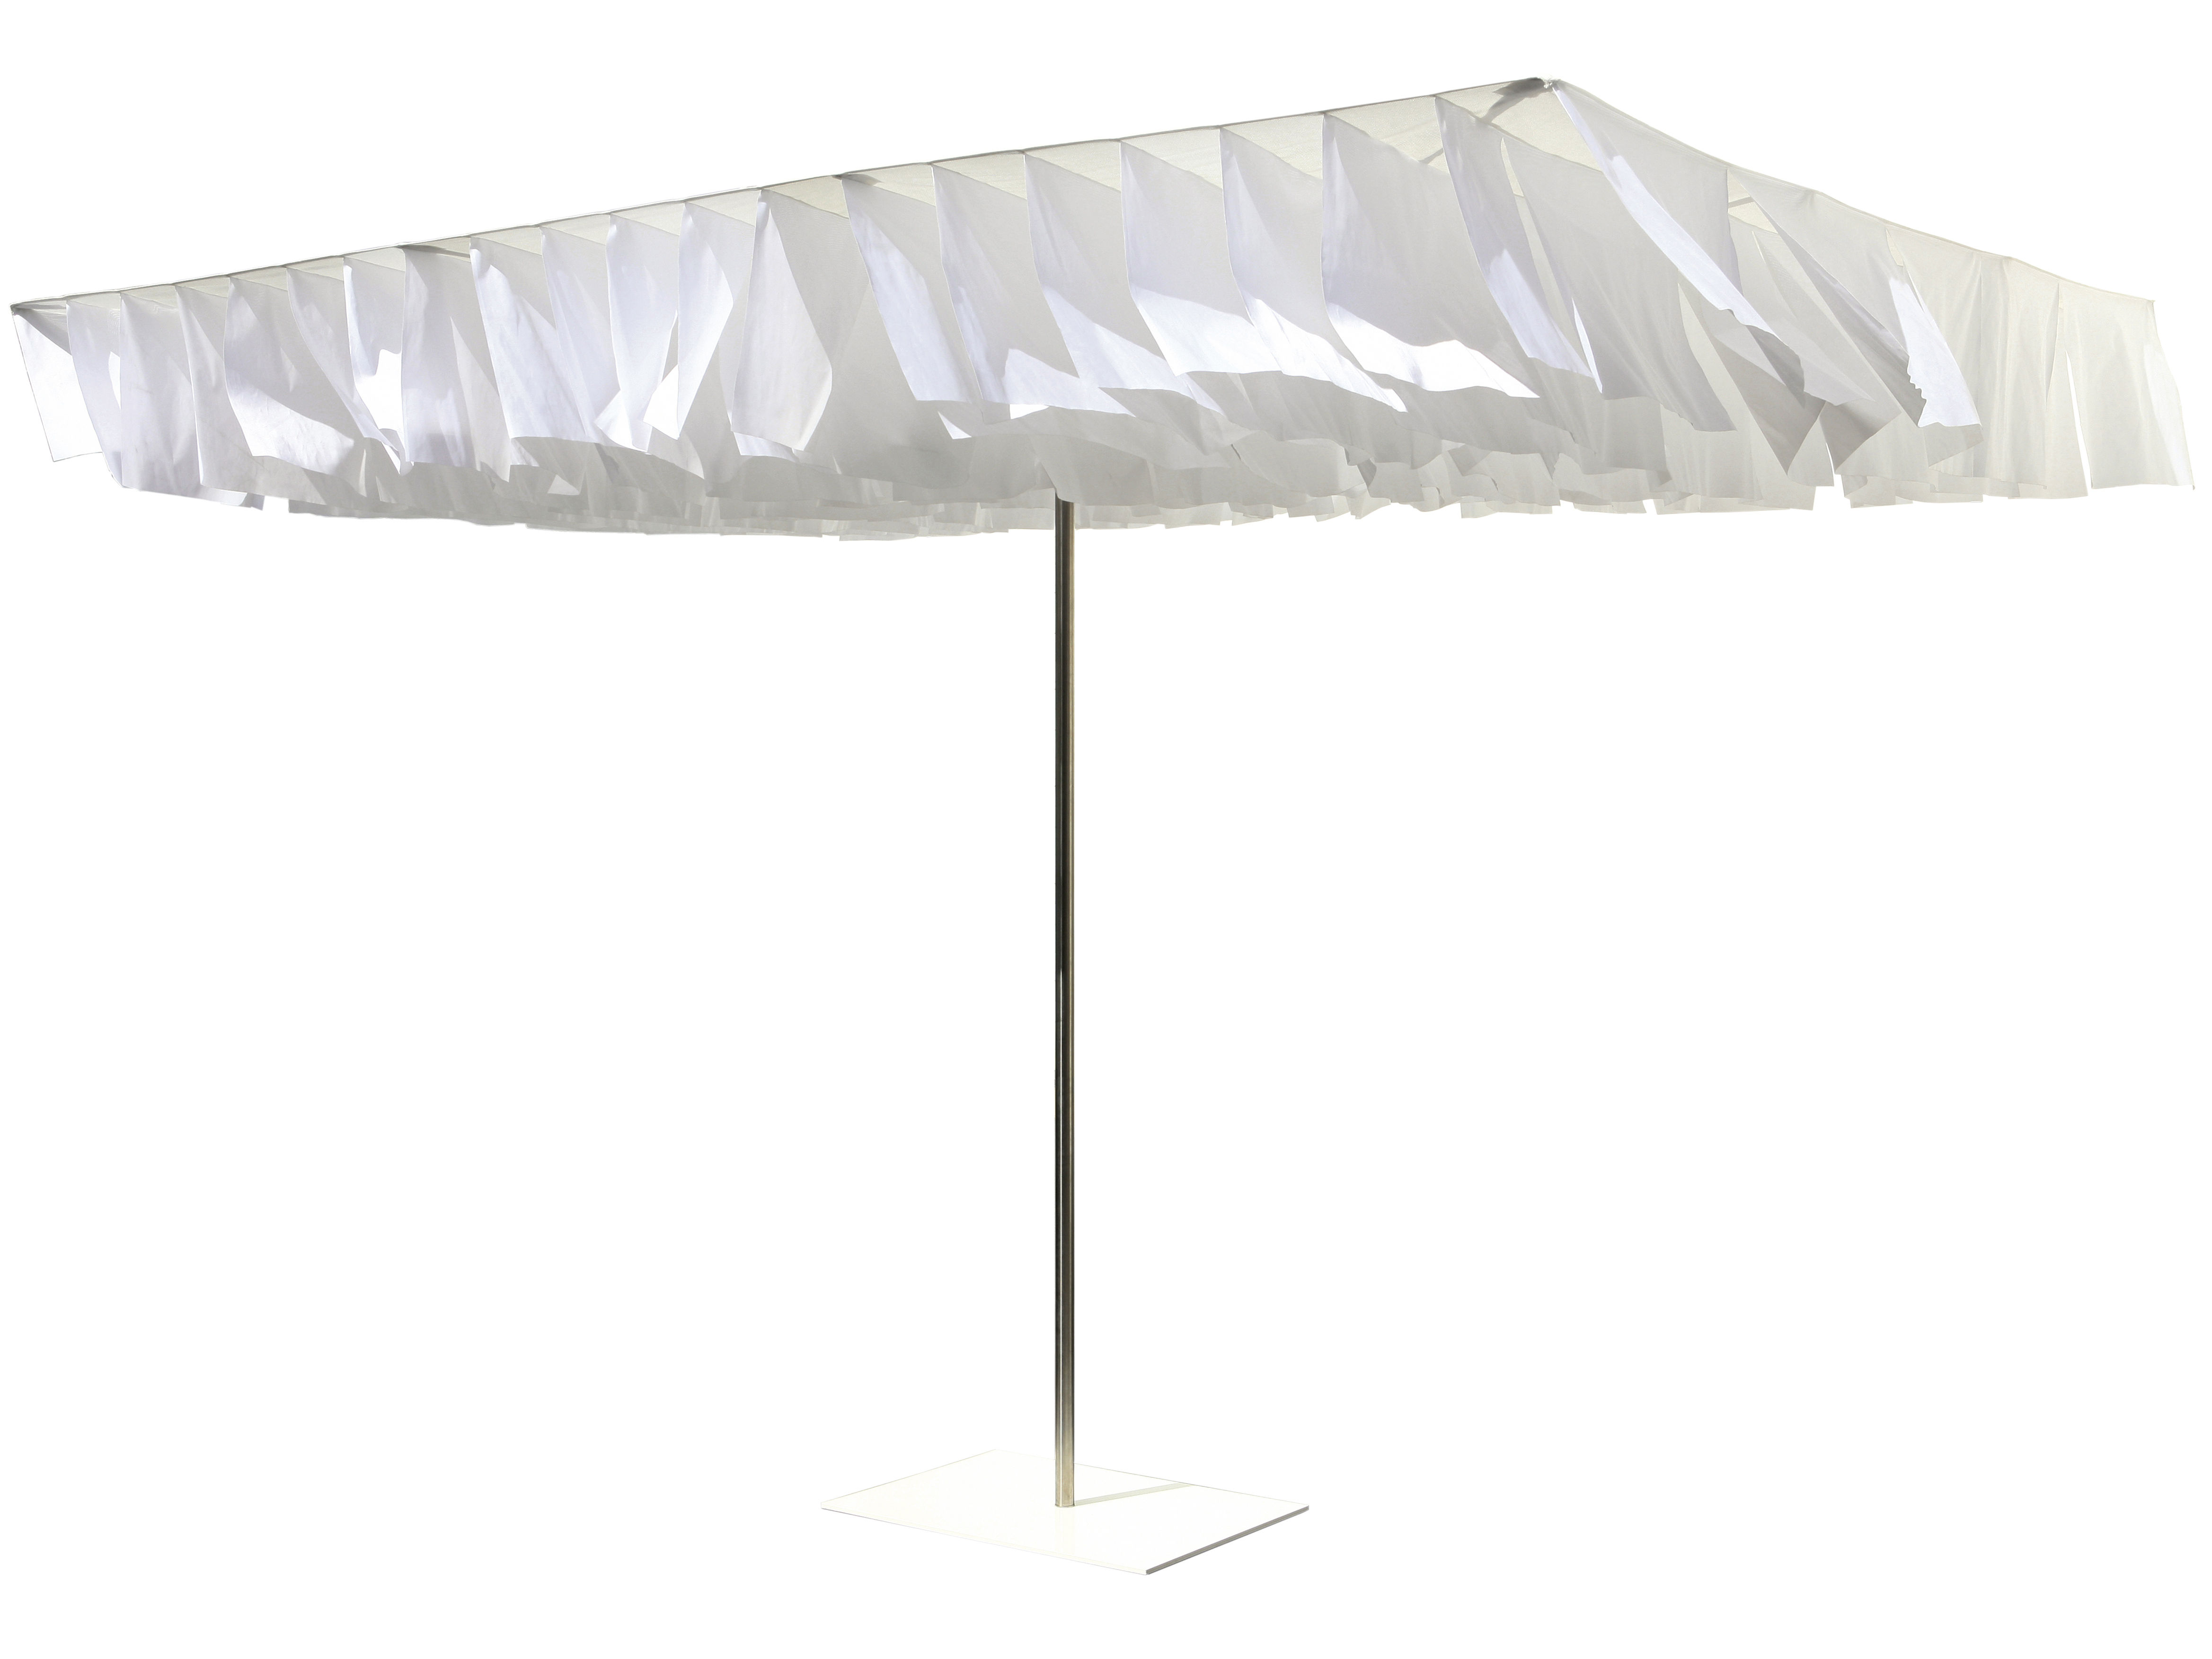 Outdoor - Parasols - Breezer Parasol by Symo - White parasol / white top - Polyester fabric, Stainless steel